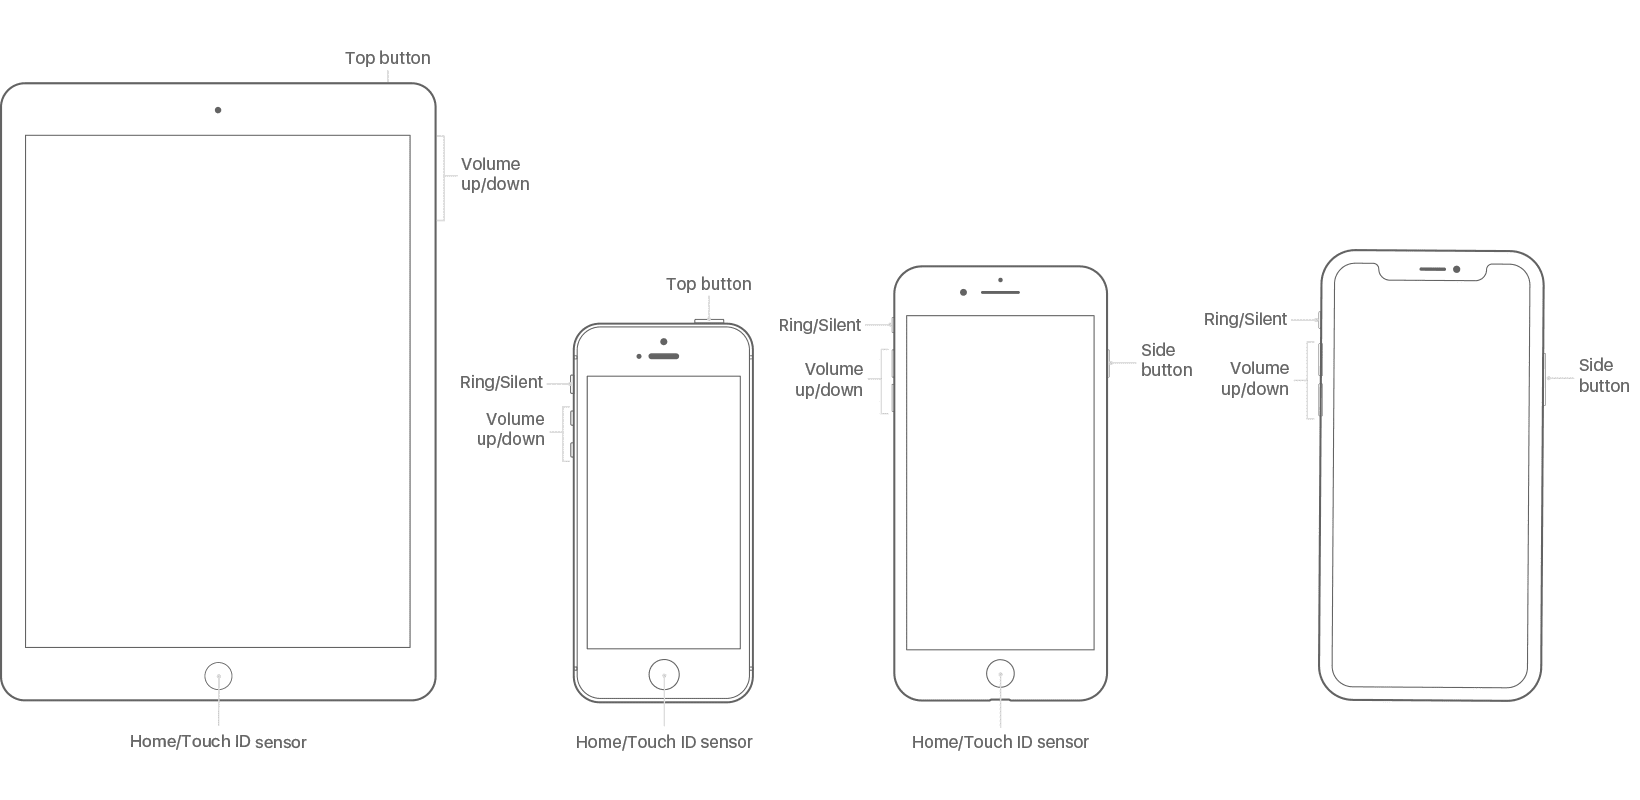 Illustration of iPad and iPhone models with buttons labeled